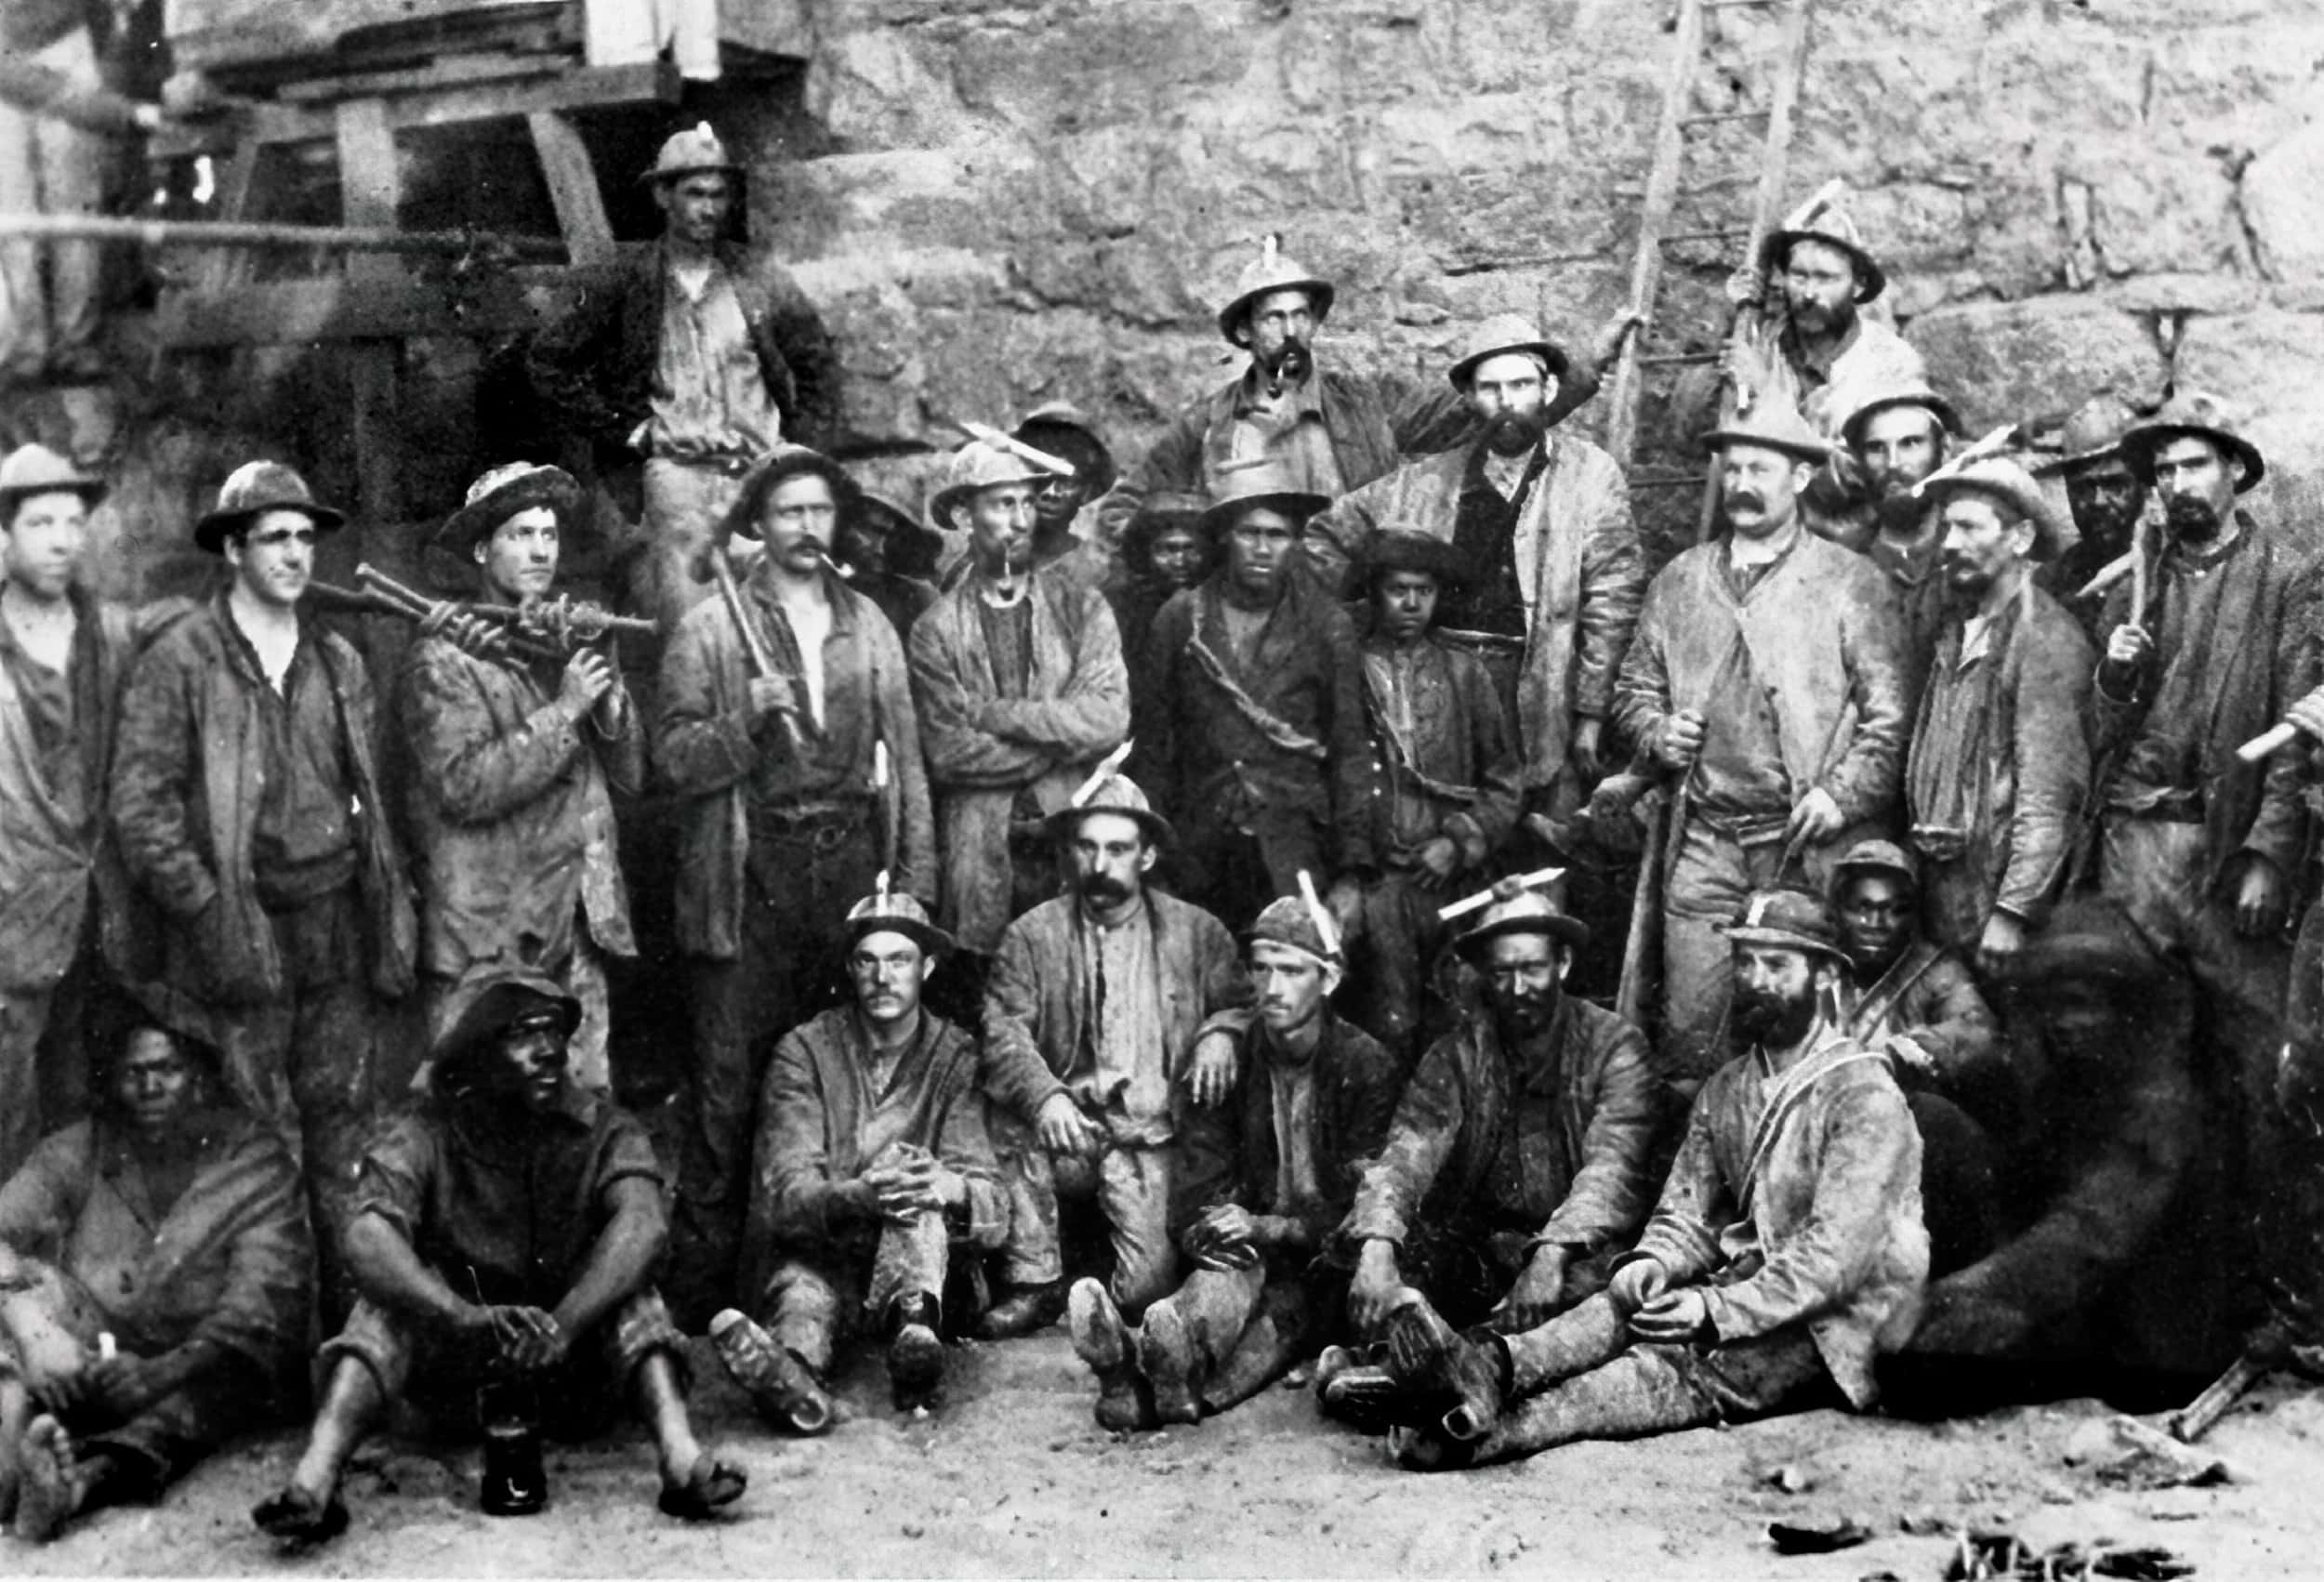 Cousin Jack miners at O'Okiep mine, South Africa, 1890